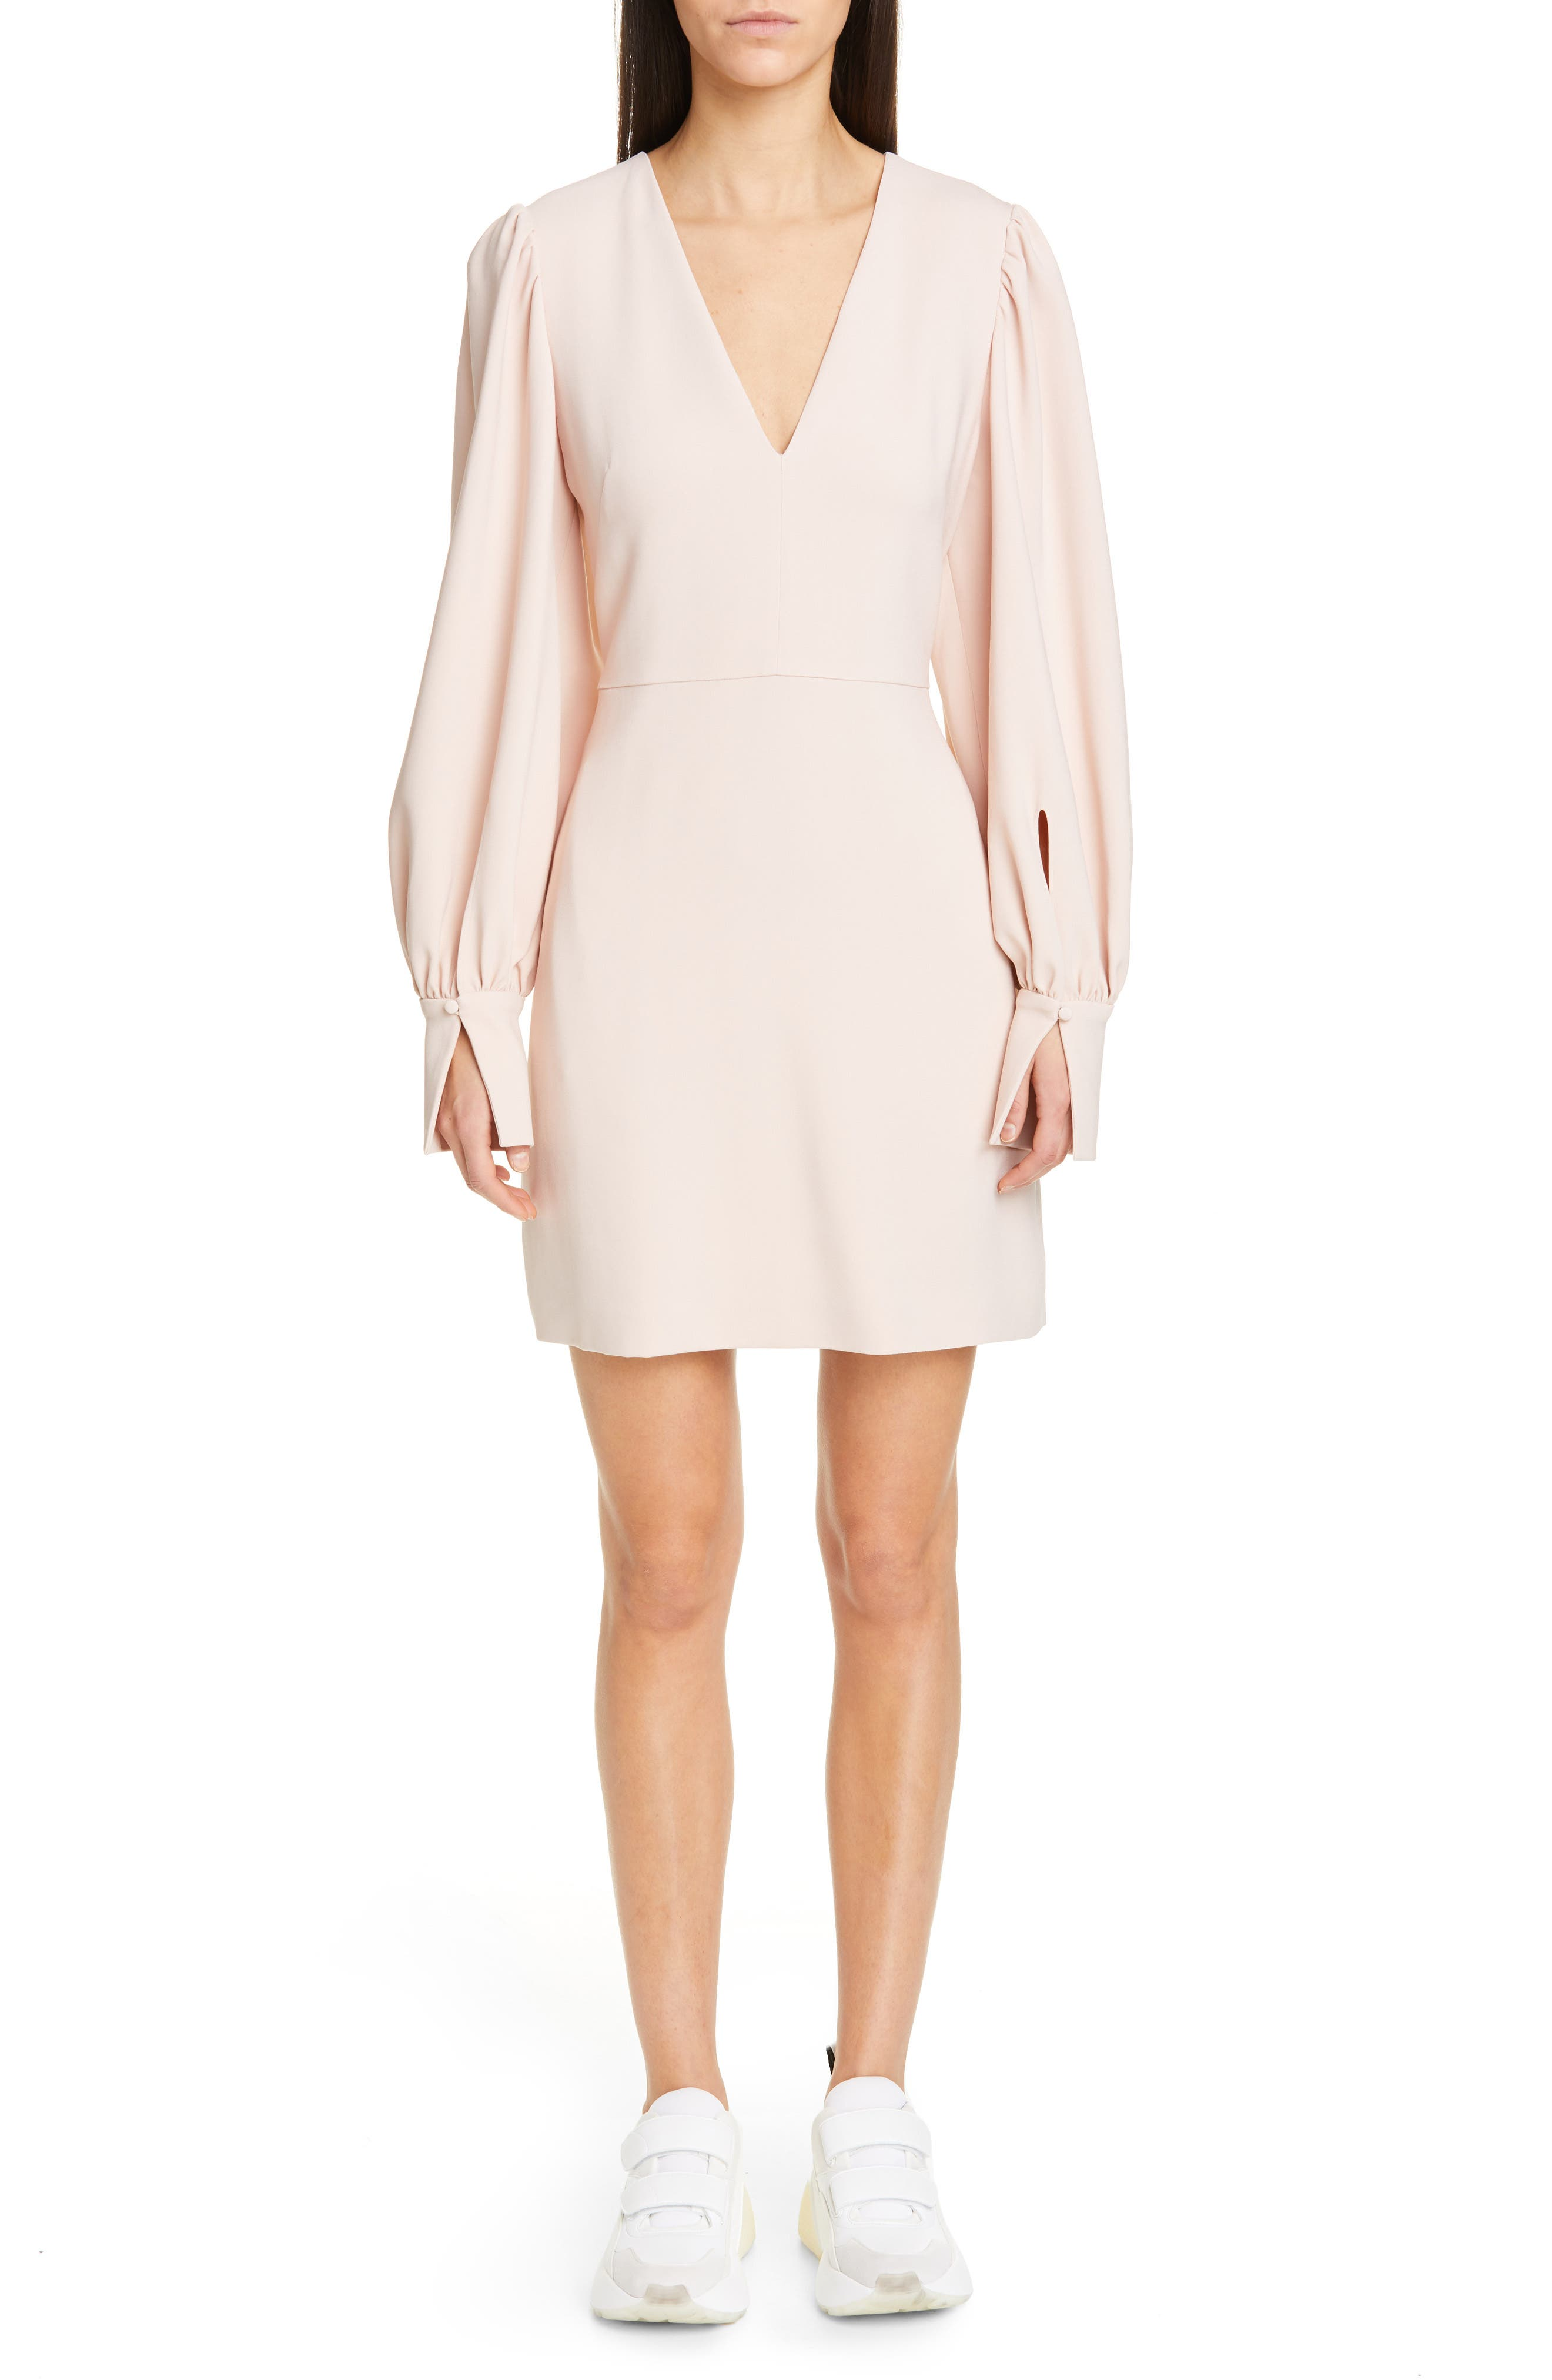 Stella Mccartney Long Sleeve Stretch Cady Dress, 4 IT - Pink